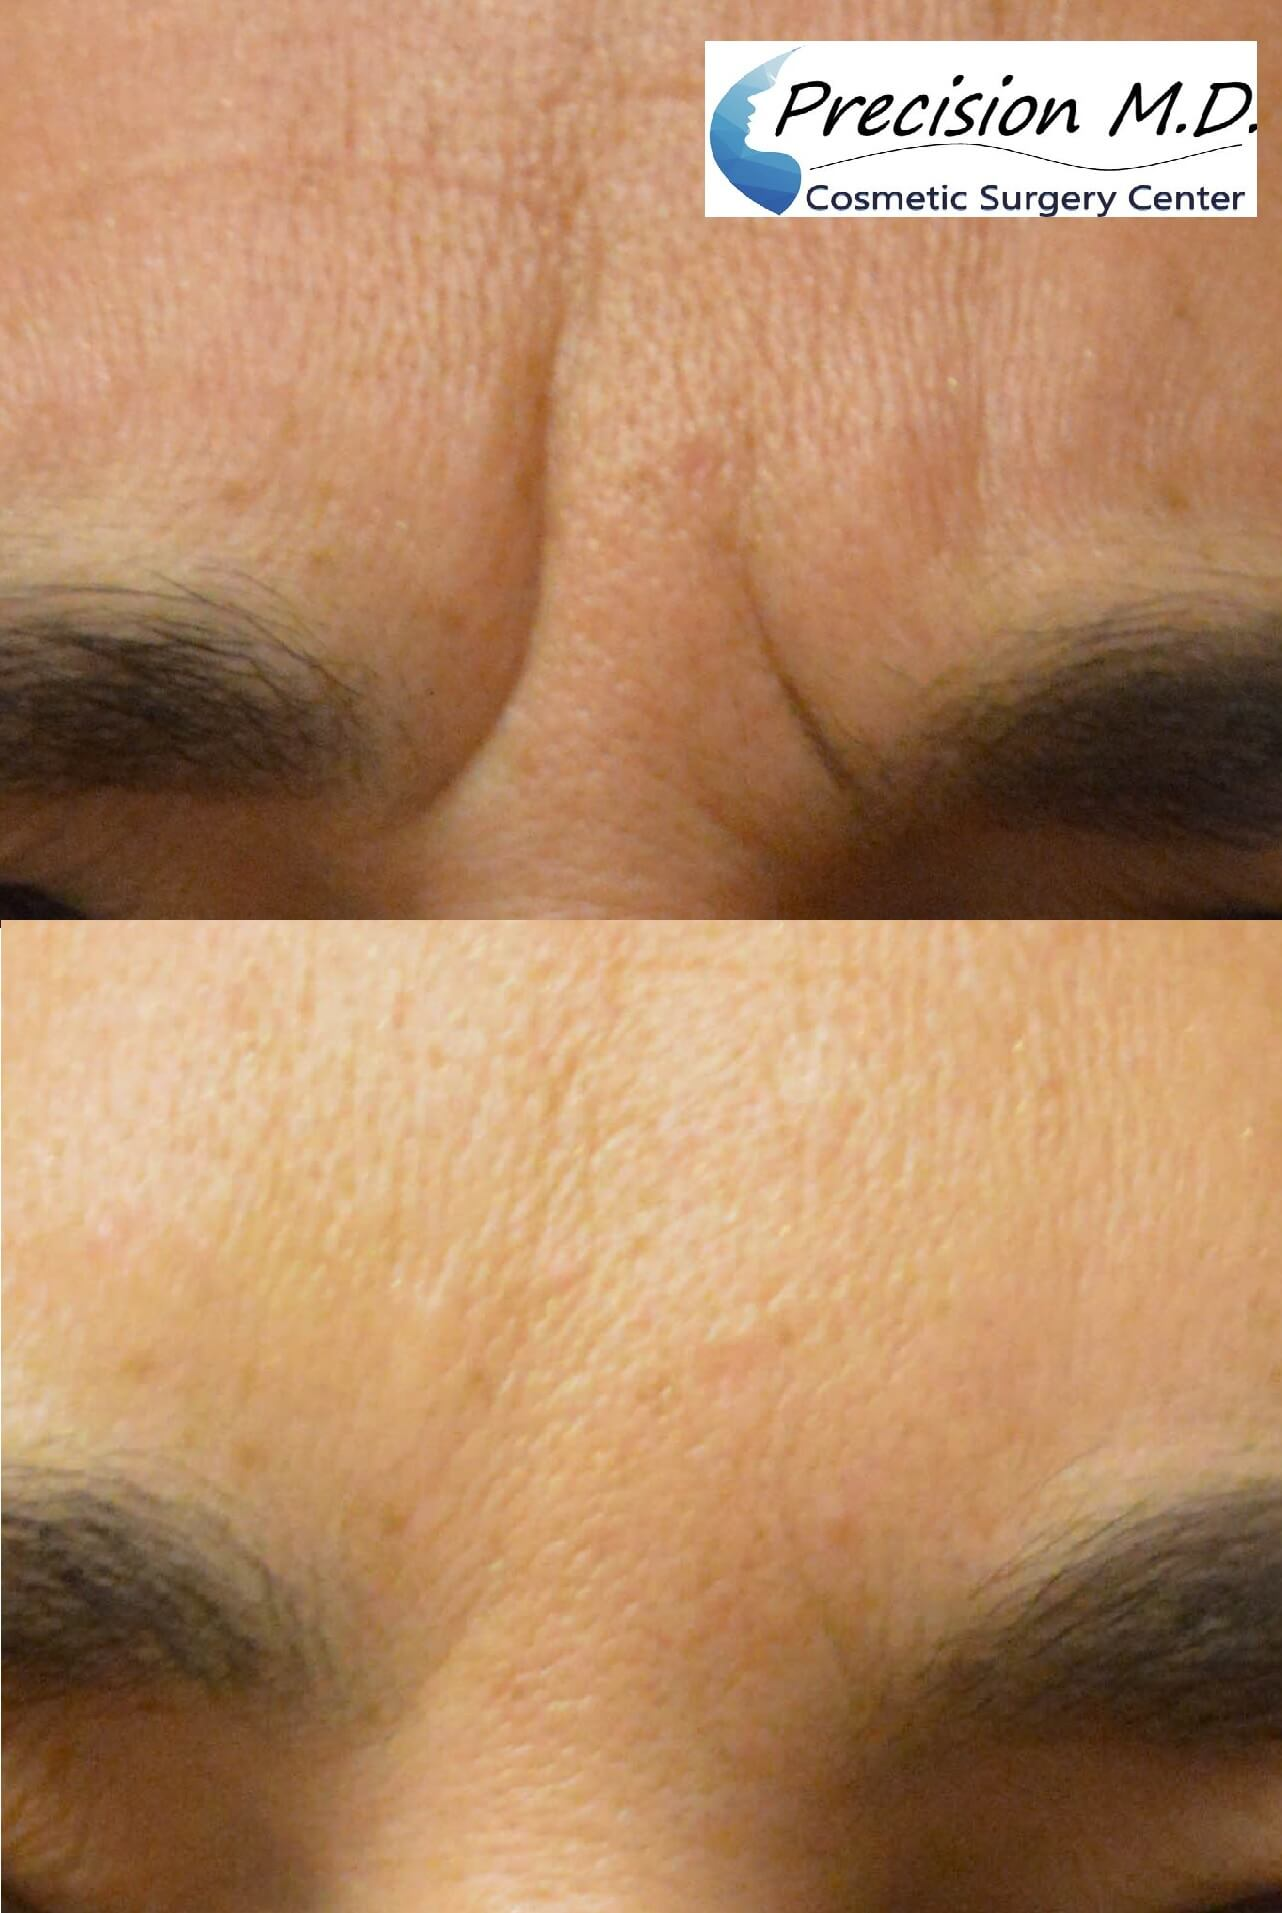 BOTOX before and after - Precision MD